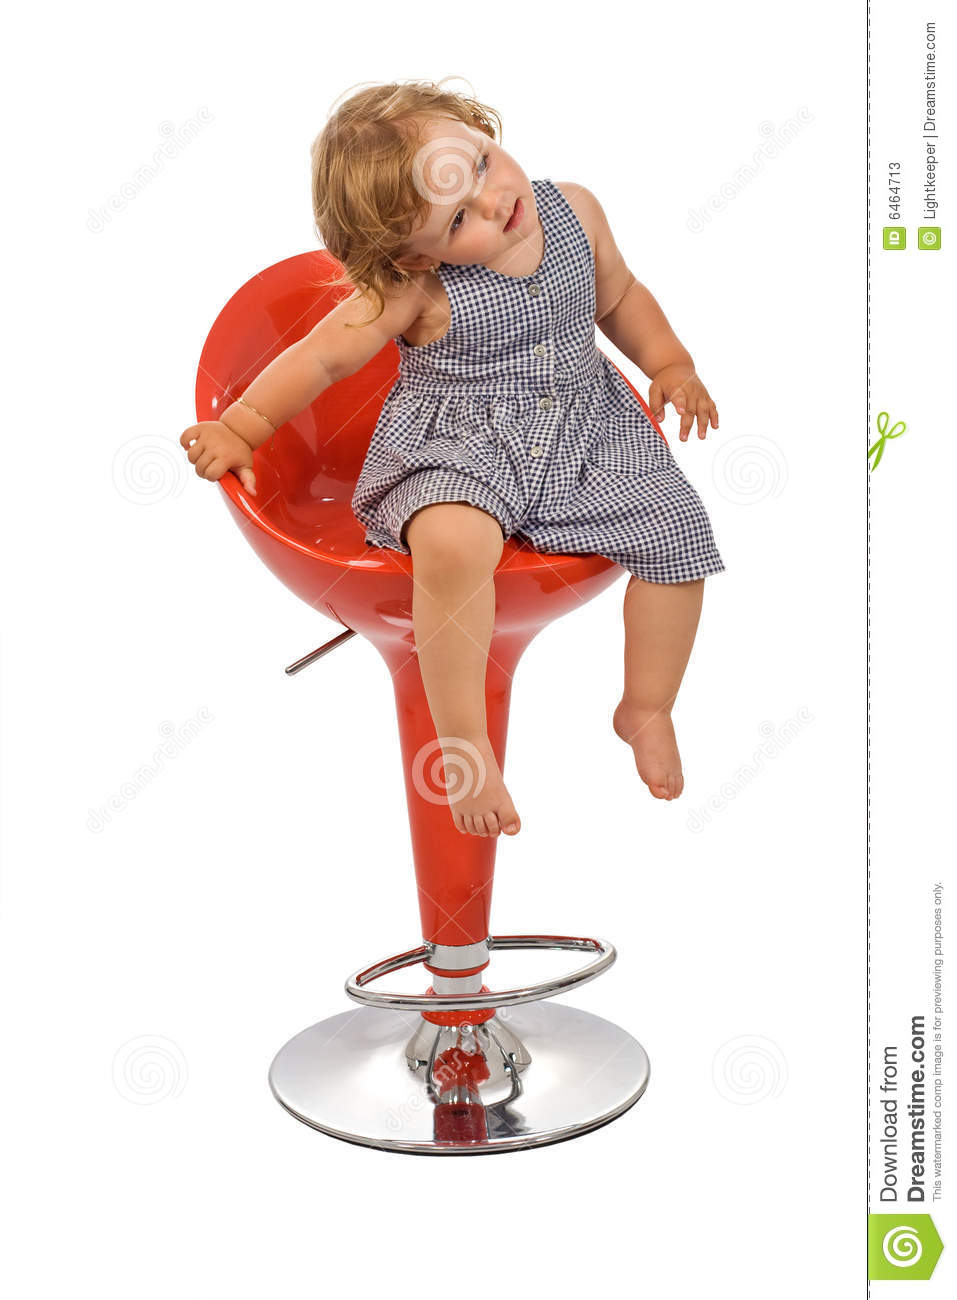 Little Girl On Bar Stool Posing Isolated Stock Photos  : little girl bar stool posing isolated 6464713 from dreamstime.com size 957 x 1300 jpeg 102kB